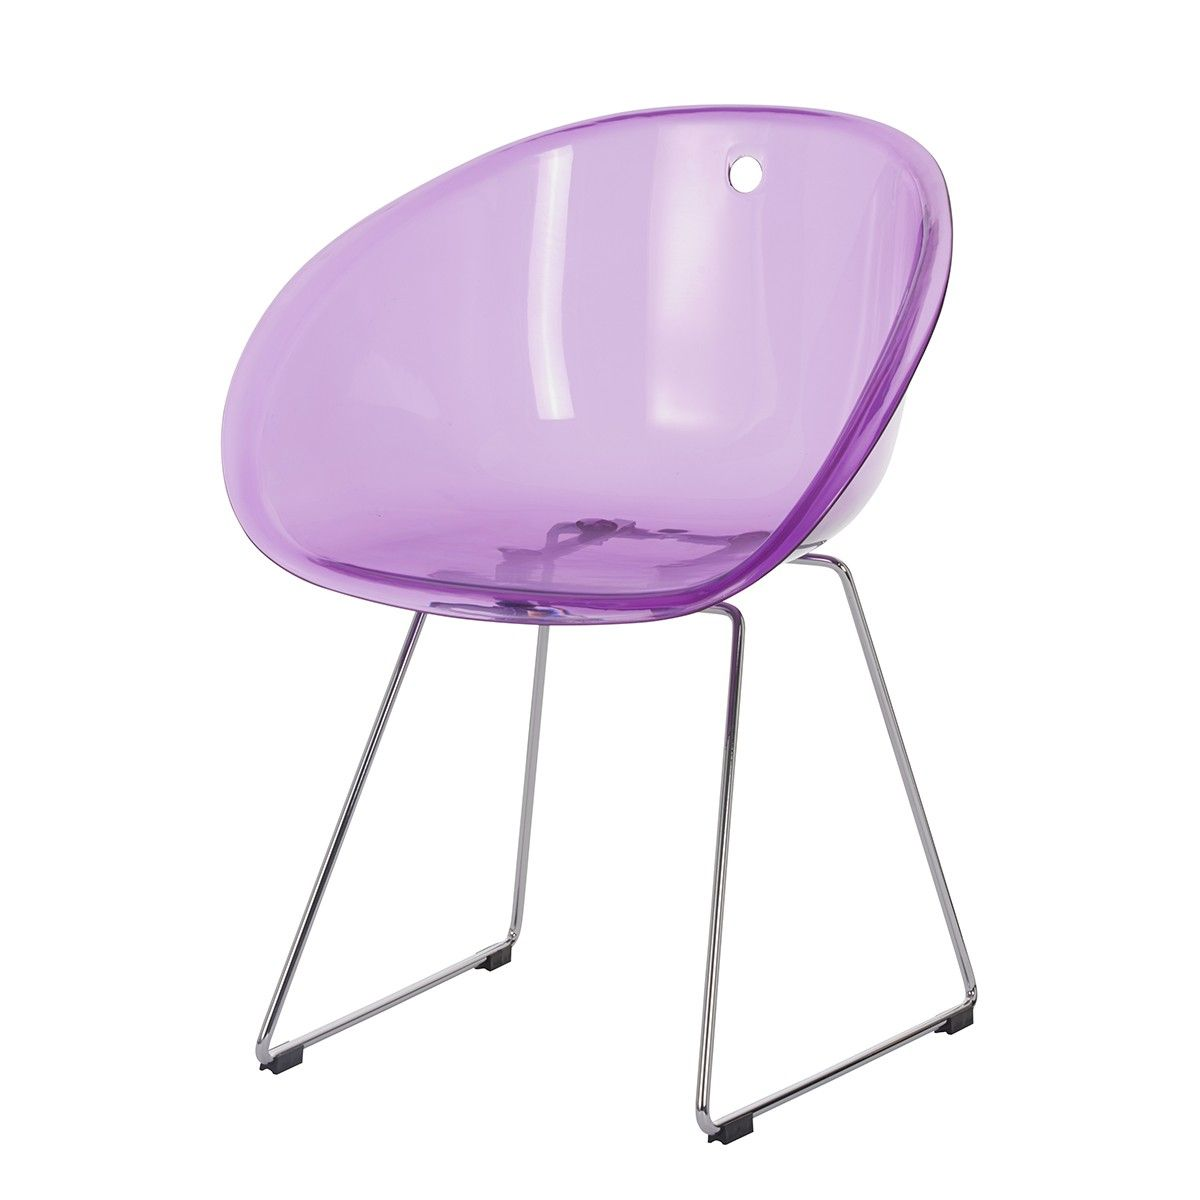 Replica Pedrali Gliss Chair